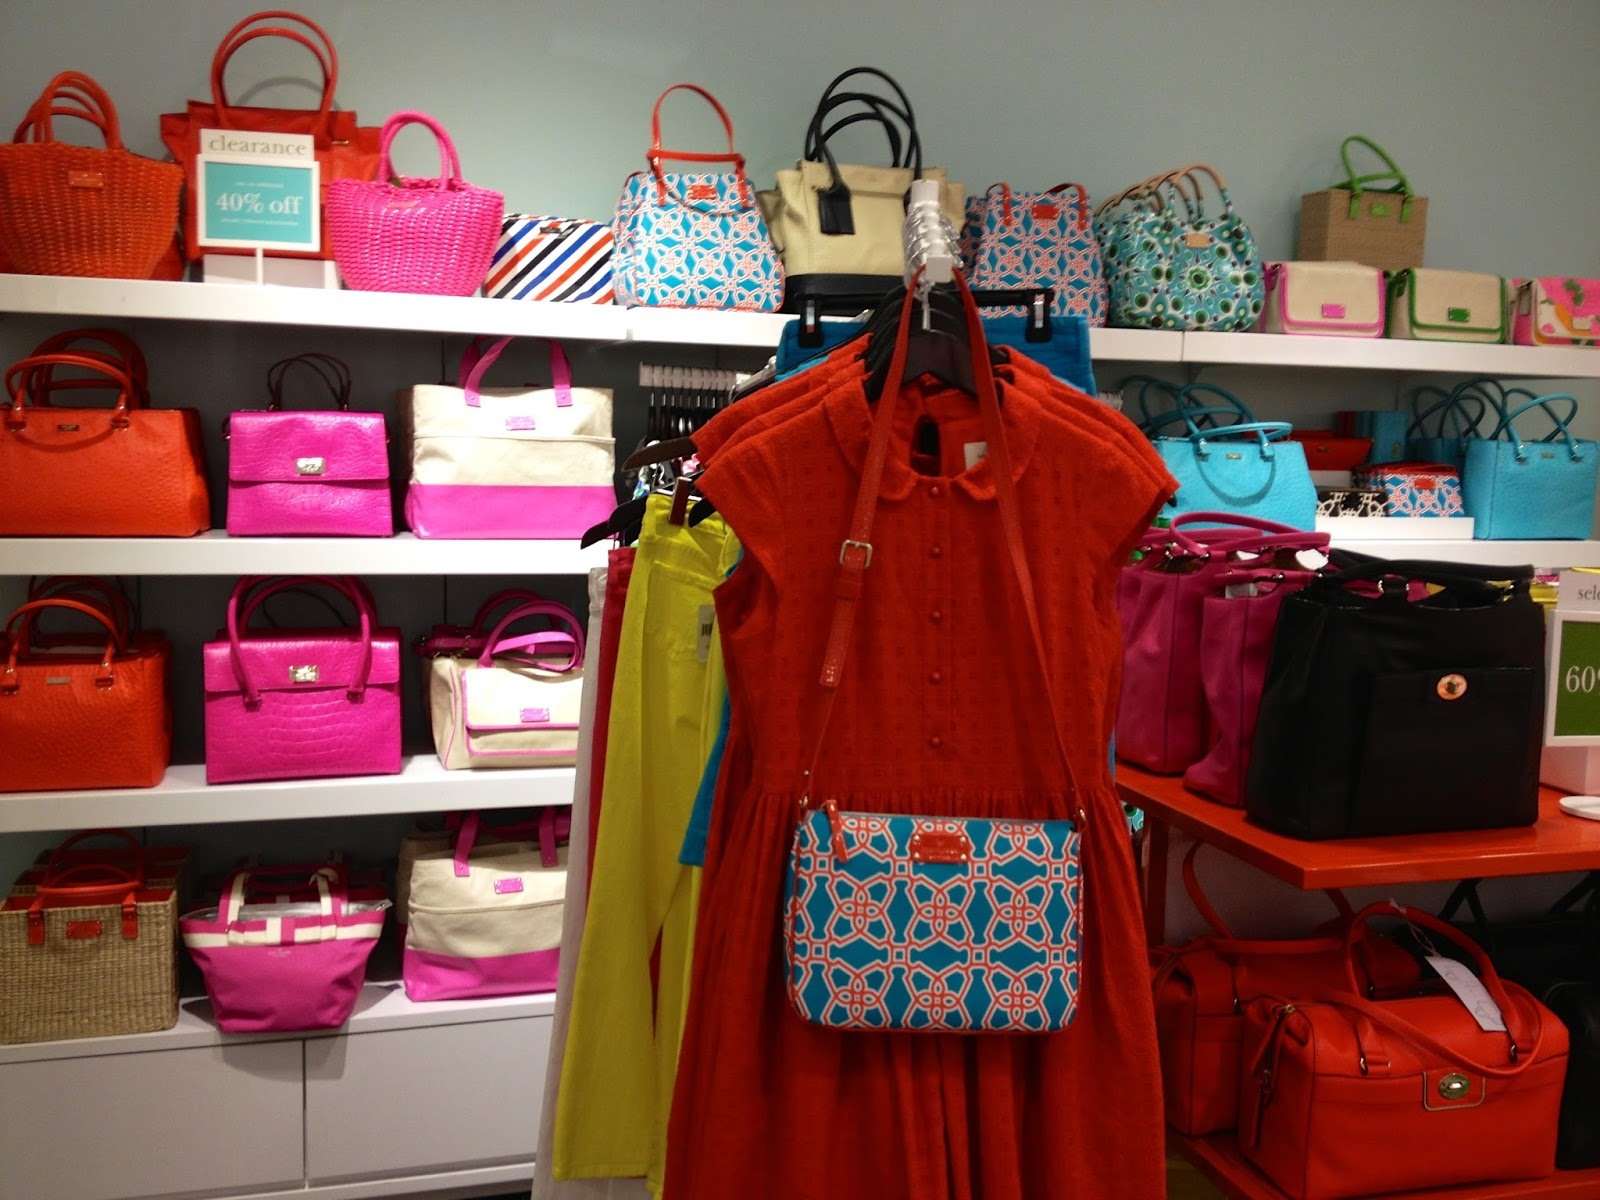 b12122a94b0 great deal at the Kate Spade Outlet in addition to a student discount